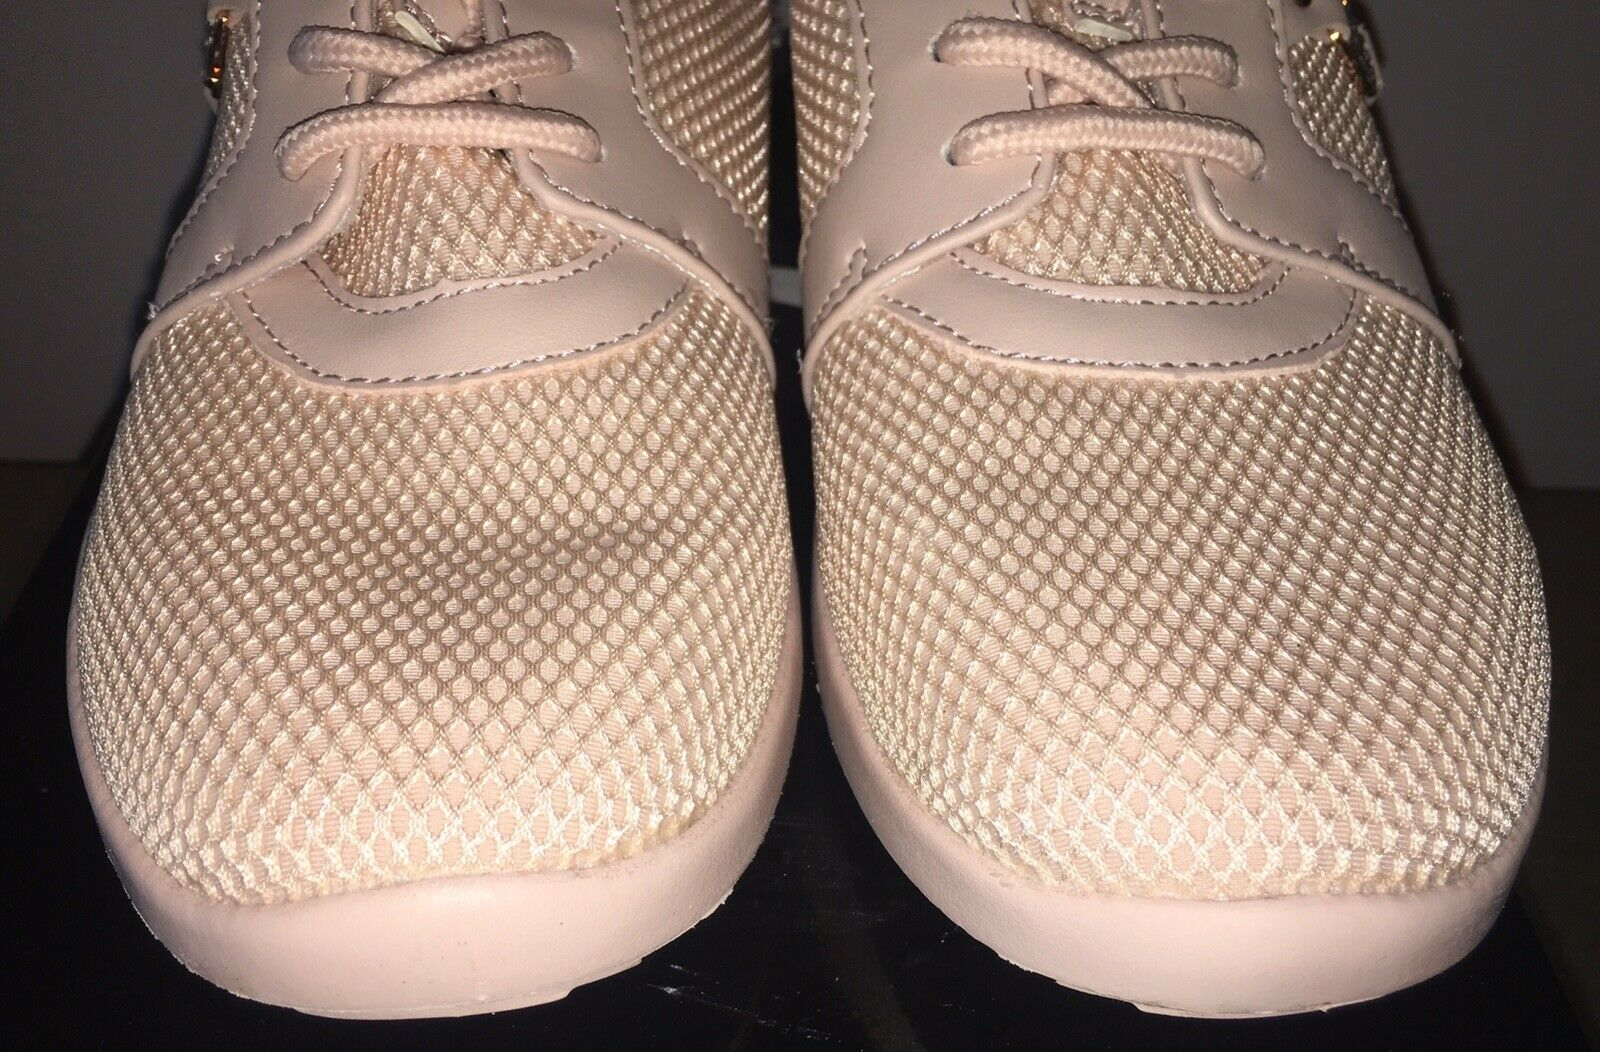 G by GUESS Tennis shoes Sneakers and Athletic Booma Light Light Light Pink - 9M - Free ship f49459